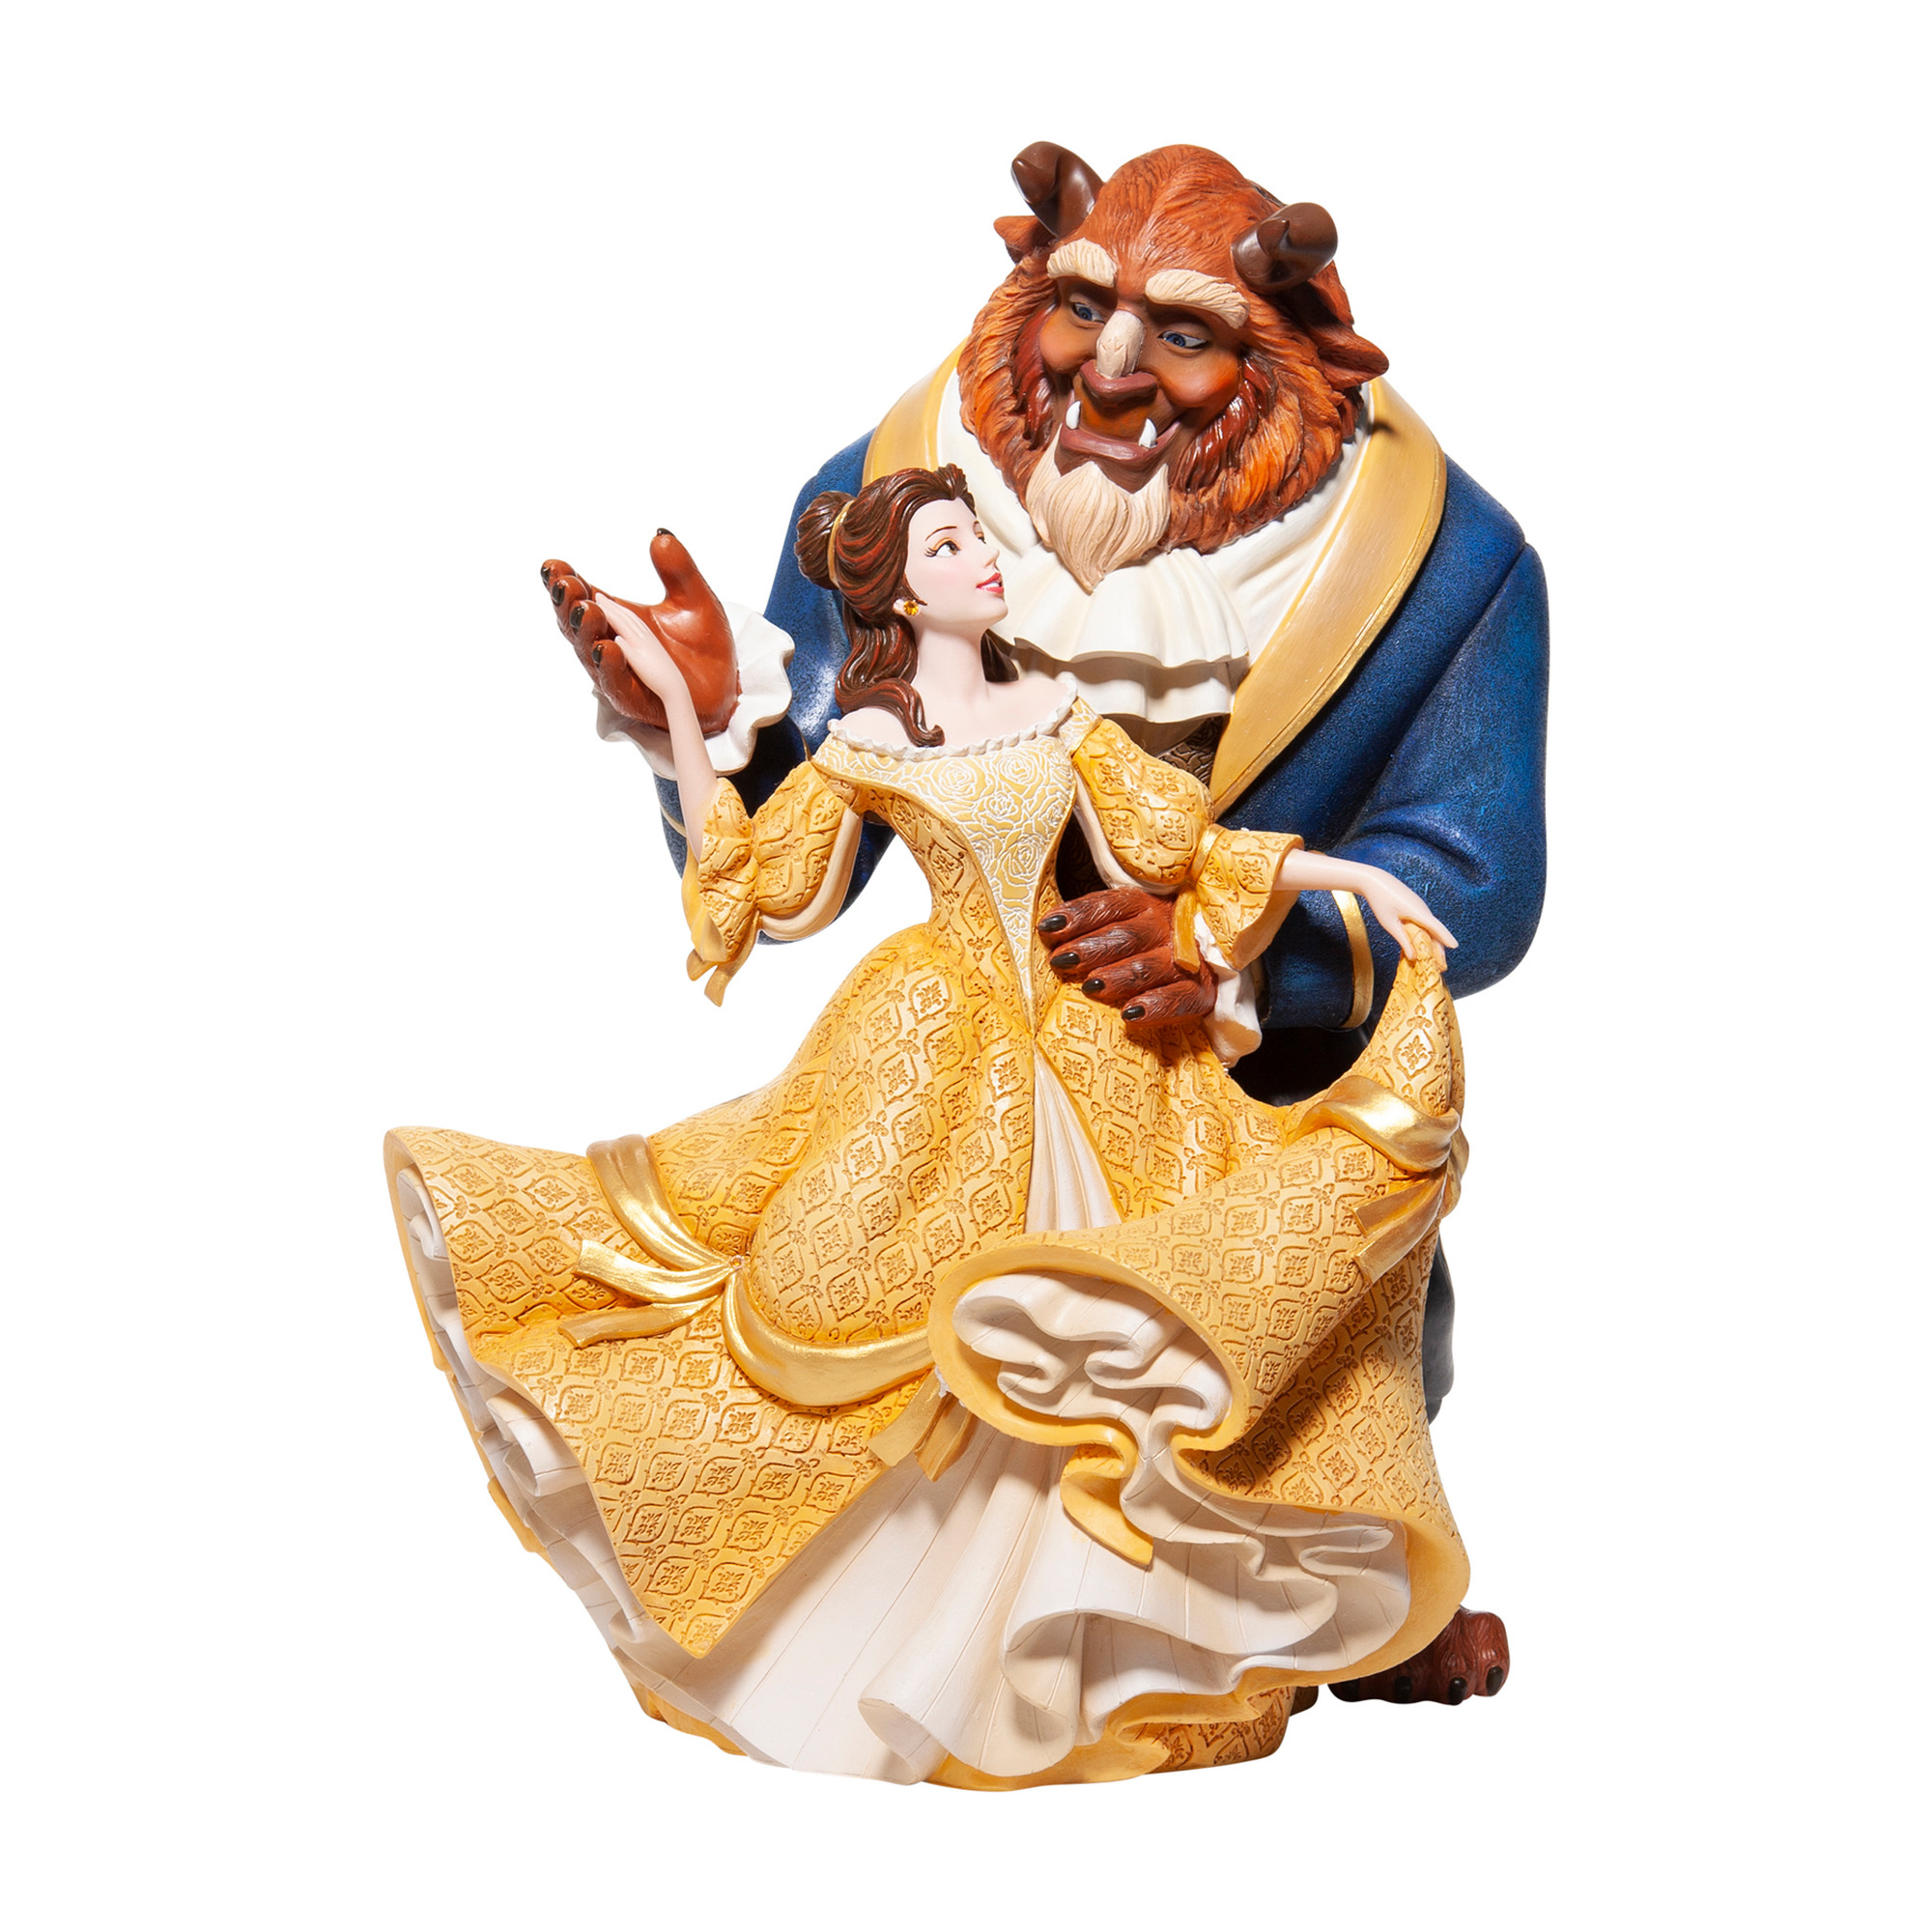 Disney Showcase Beauty & The Beast Deluxe Figurine